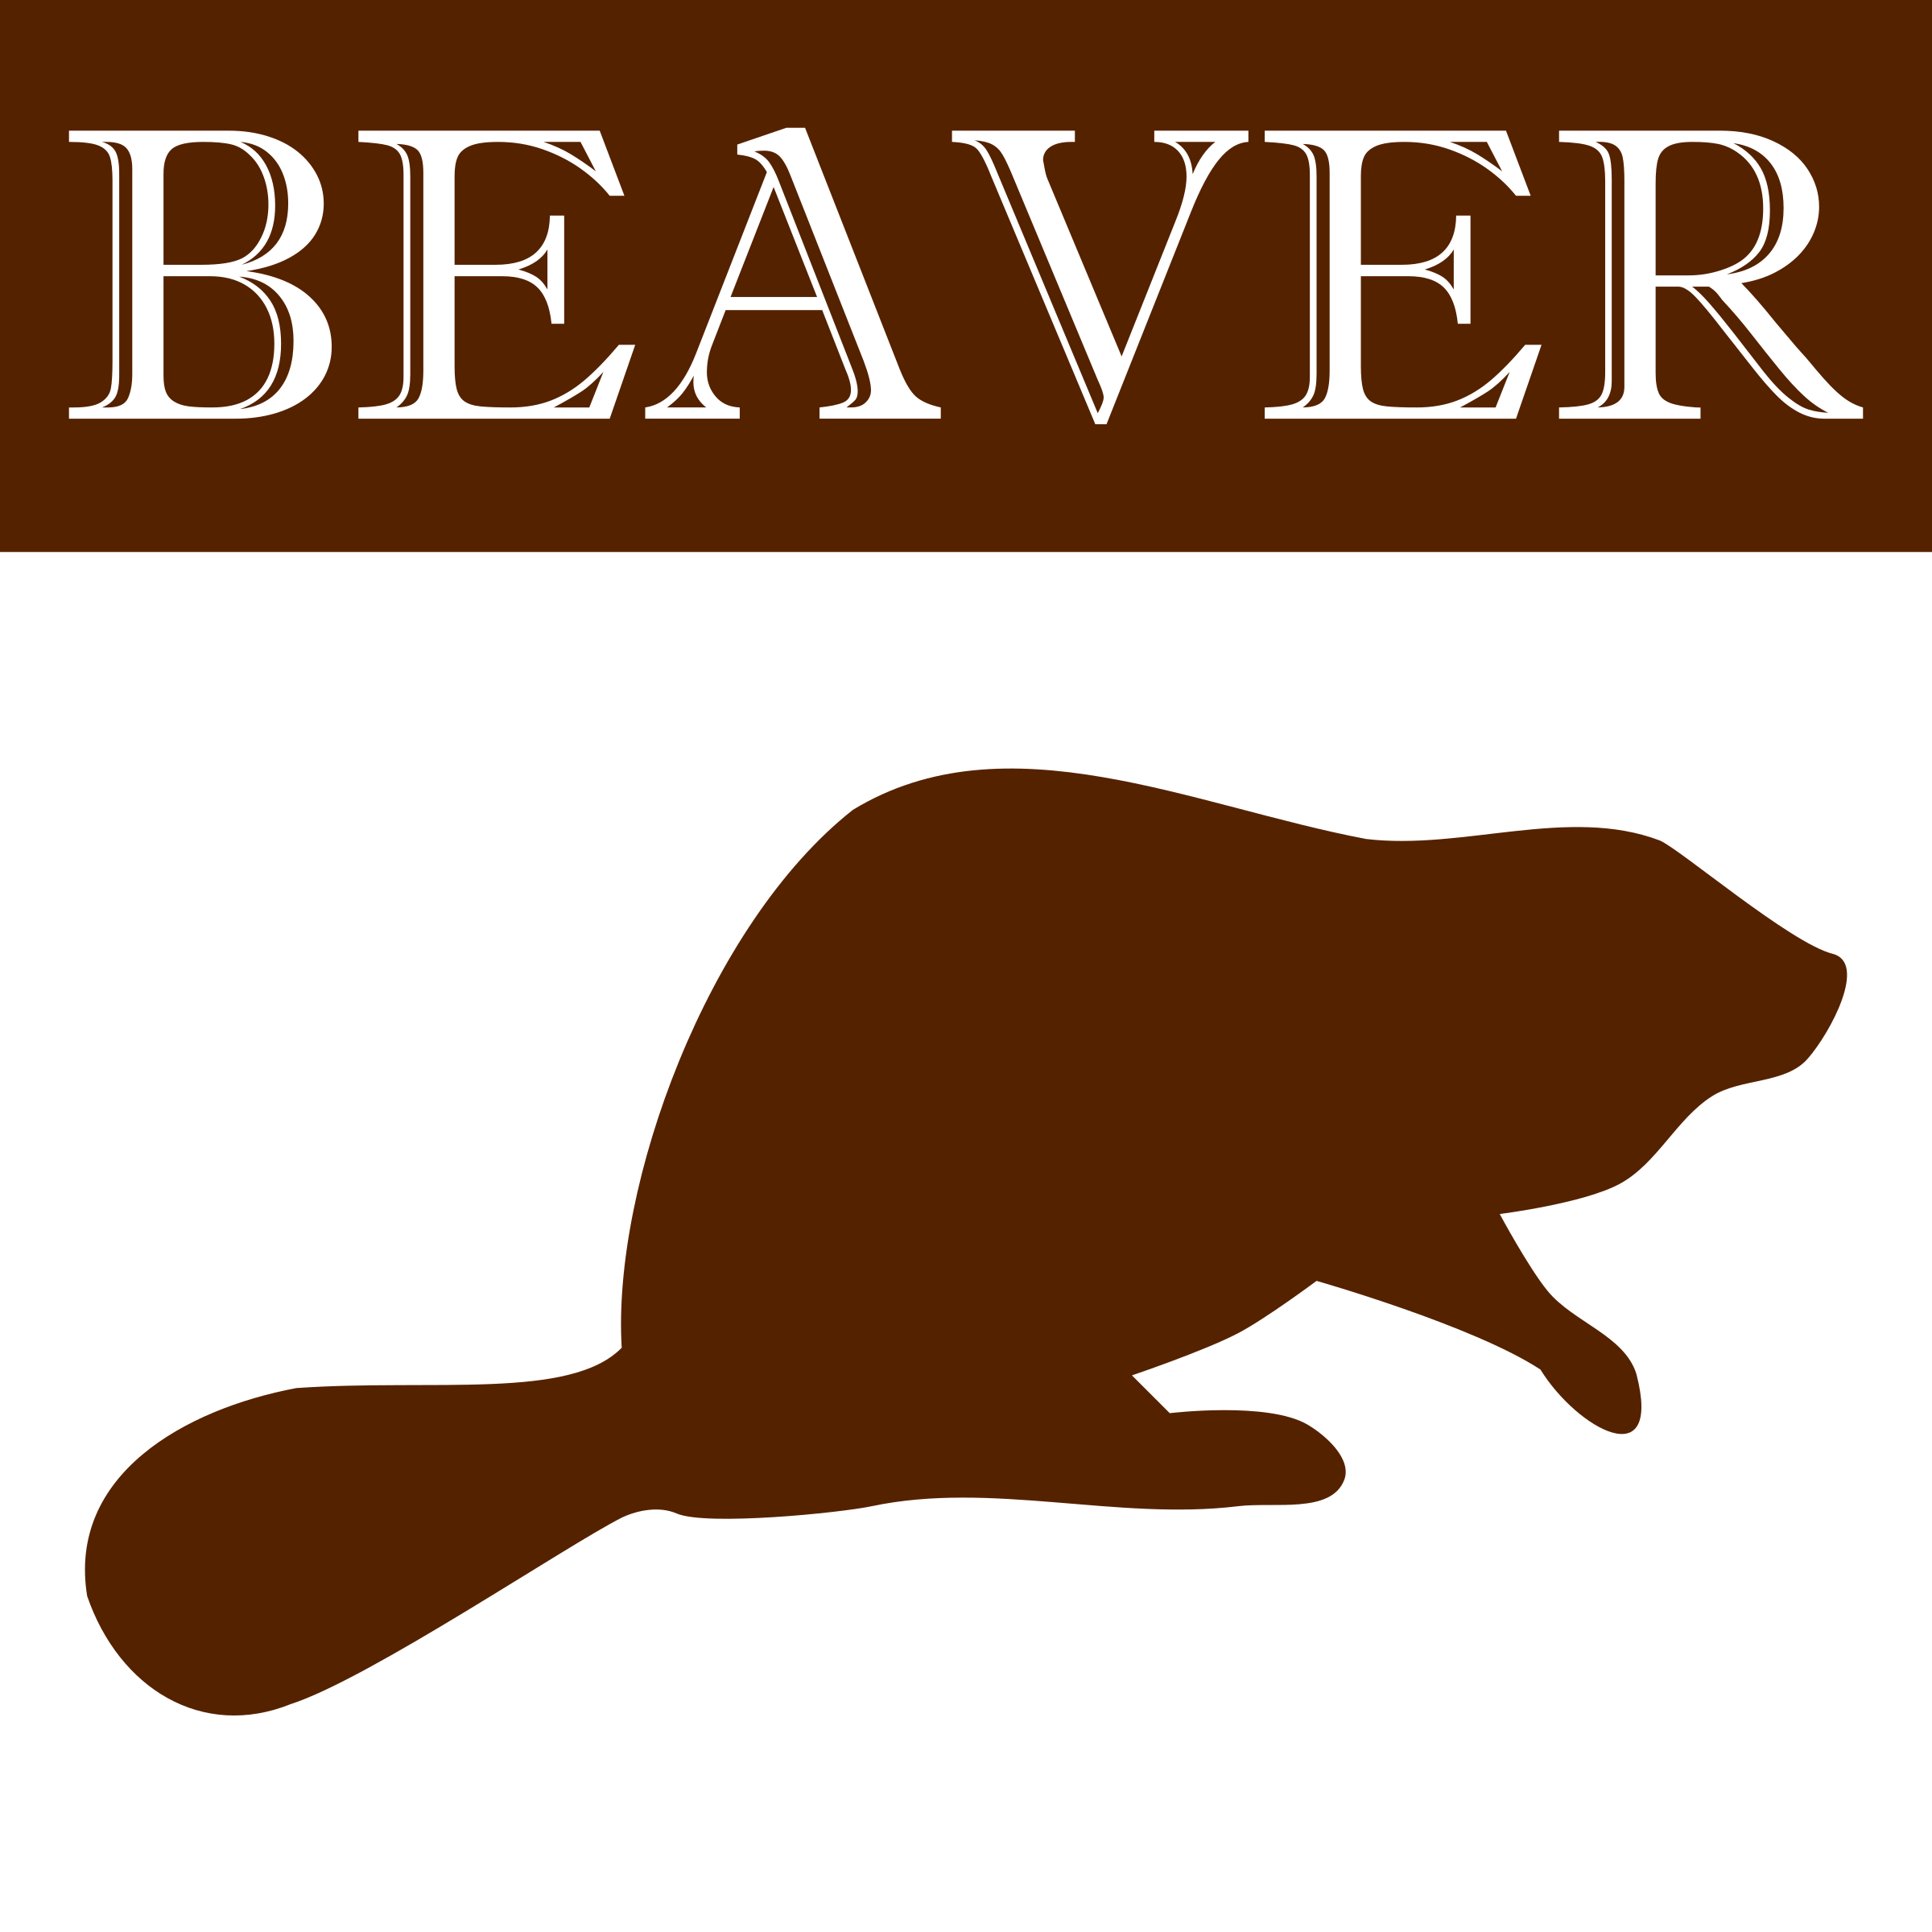 Beaver silhouette icon by Dustwin